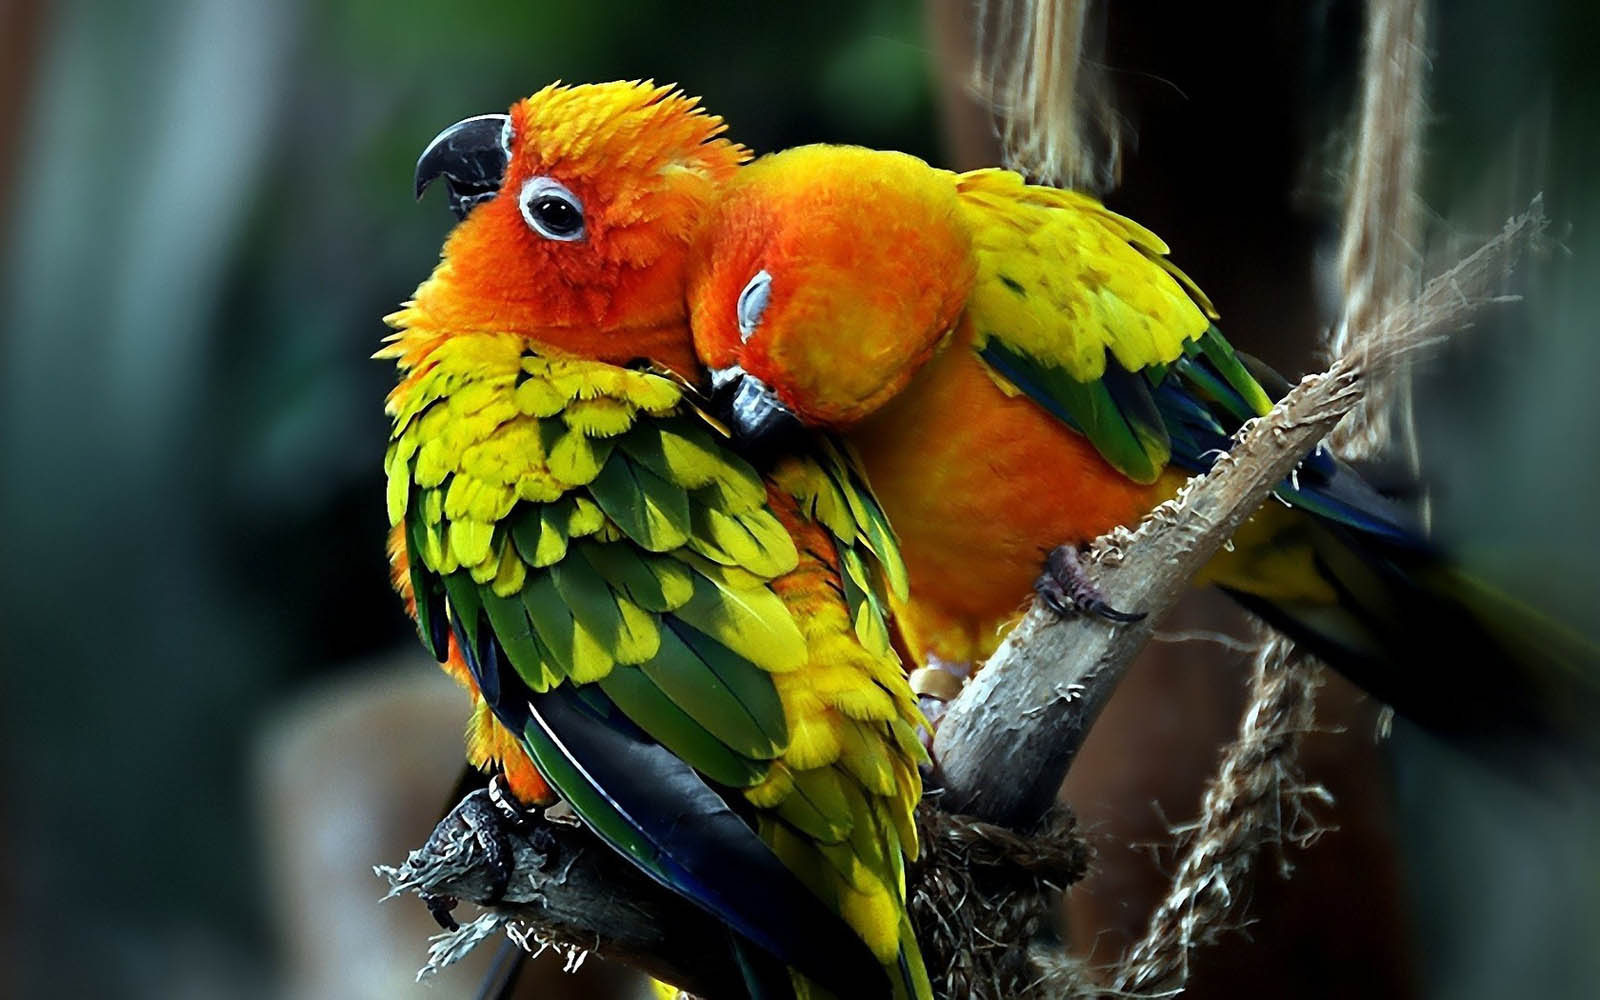 Love Birds Wallpaper Images : wallpapers: Love Birds Desktop Wallpapers